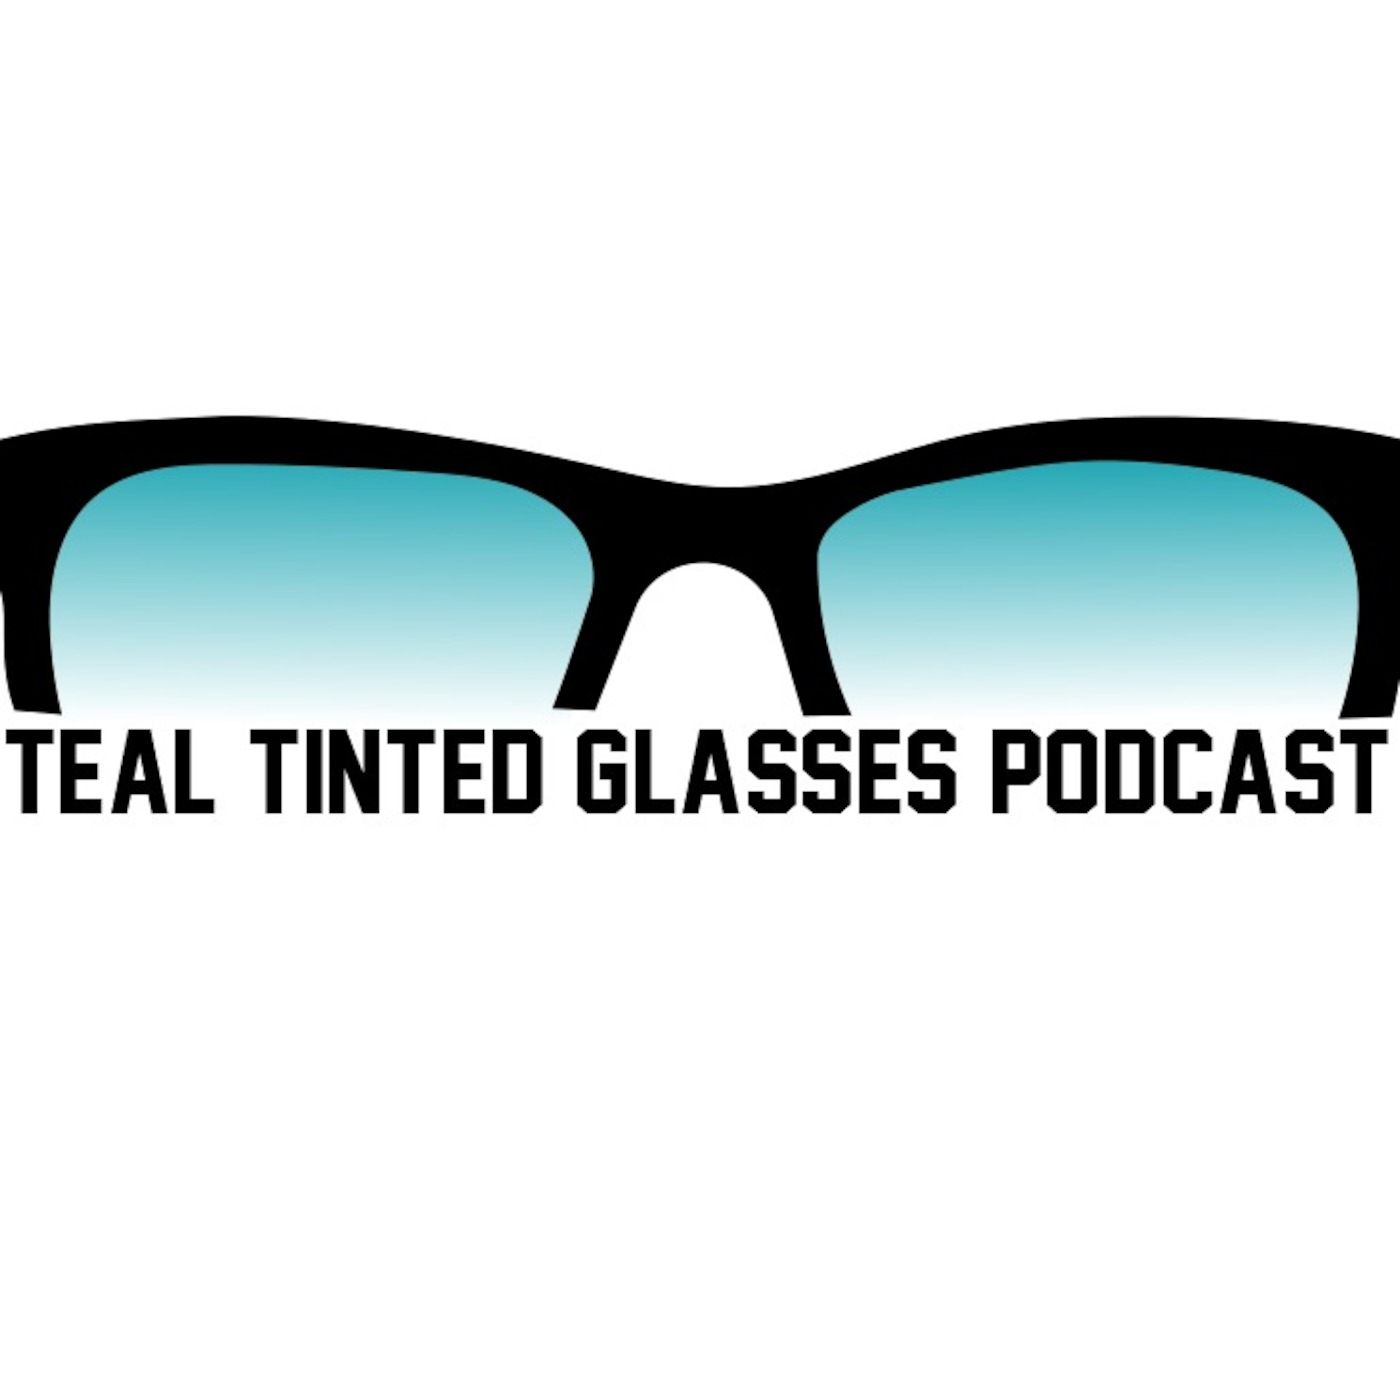 Teal Tinted Glasses Hockey Podcast